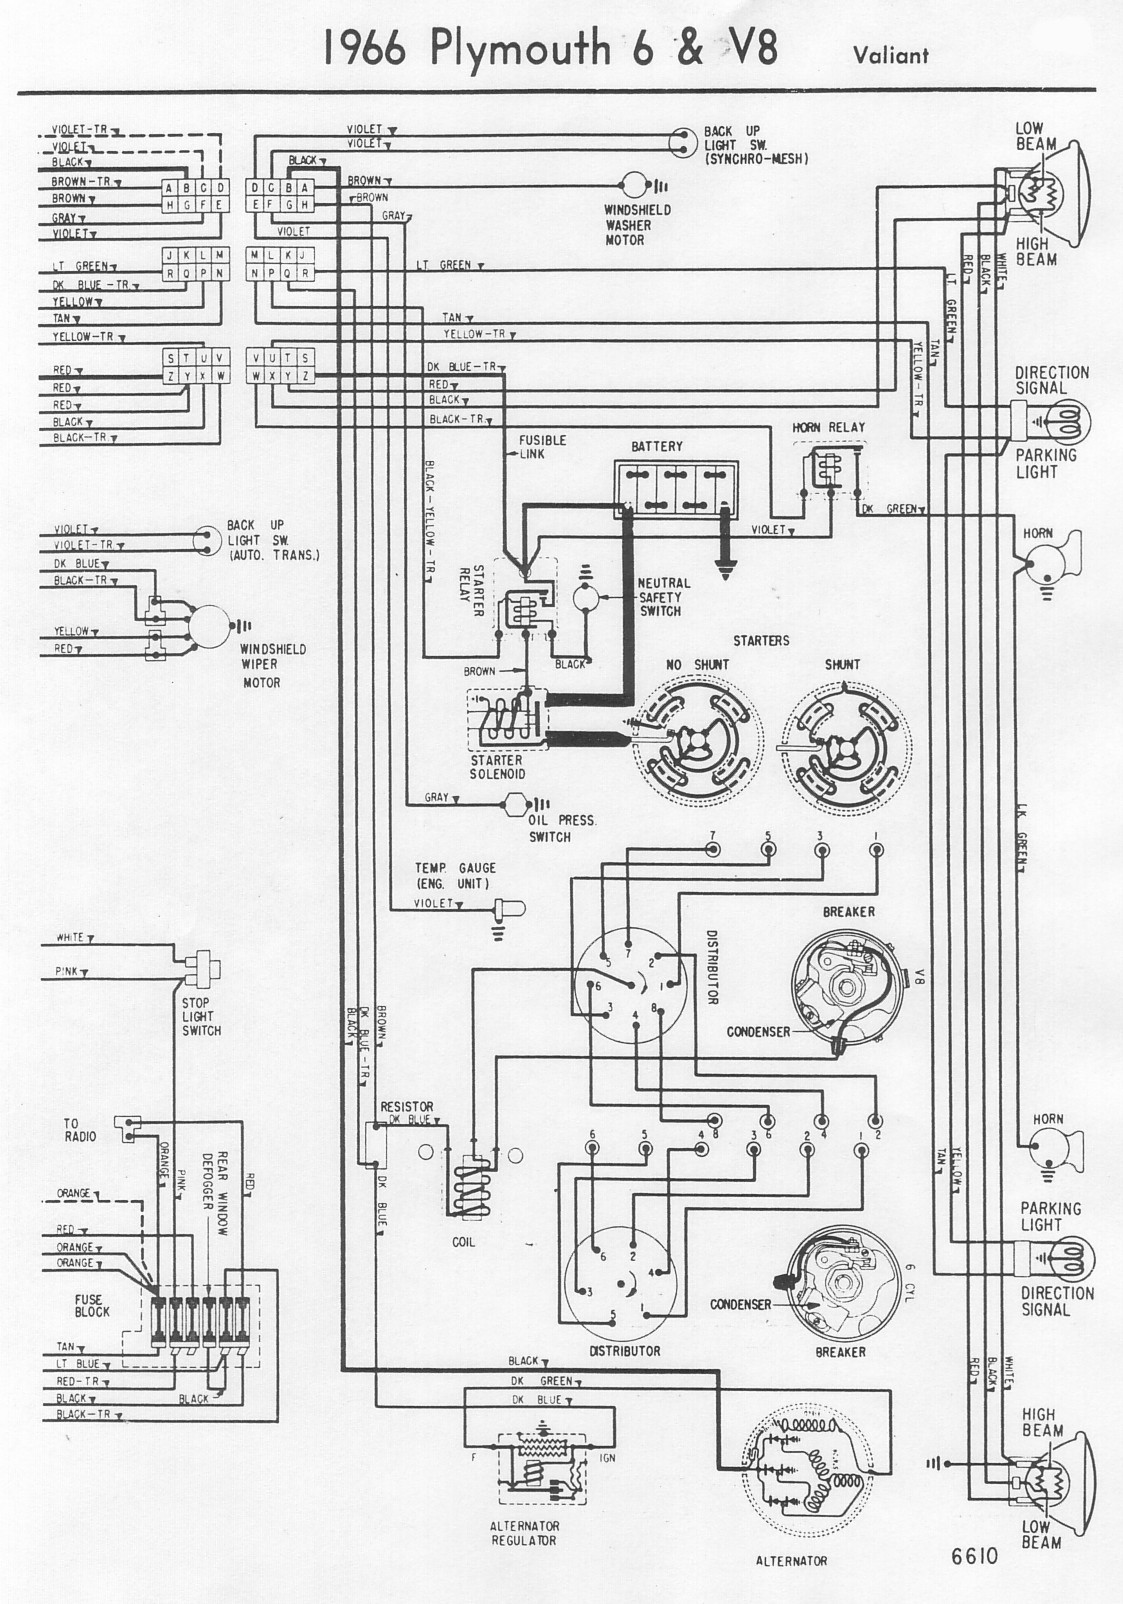 1969 Chevelle Fuse Box Diagram. Parts. Wiring Diagram Images